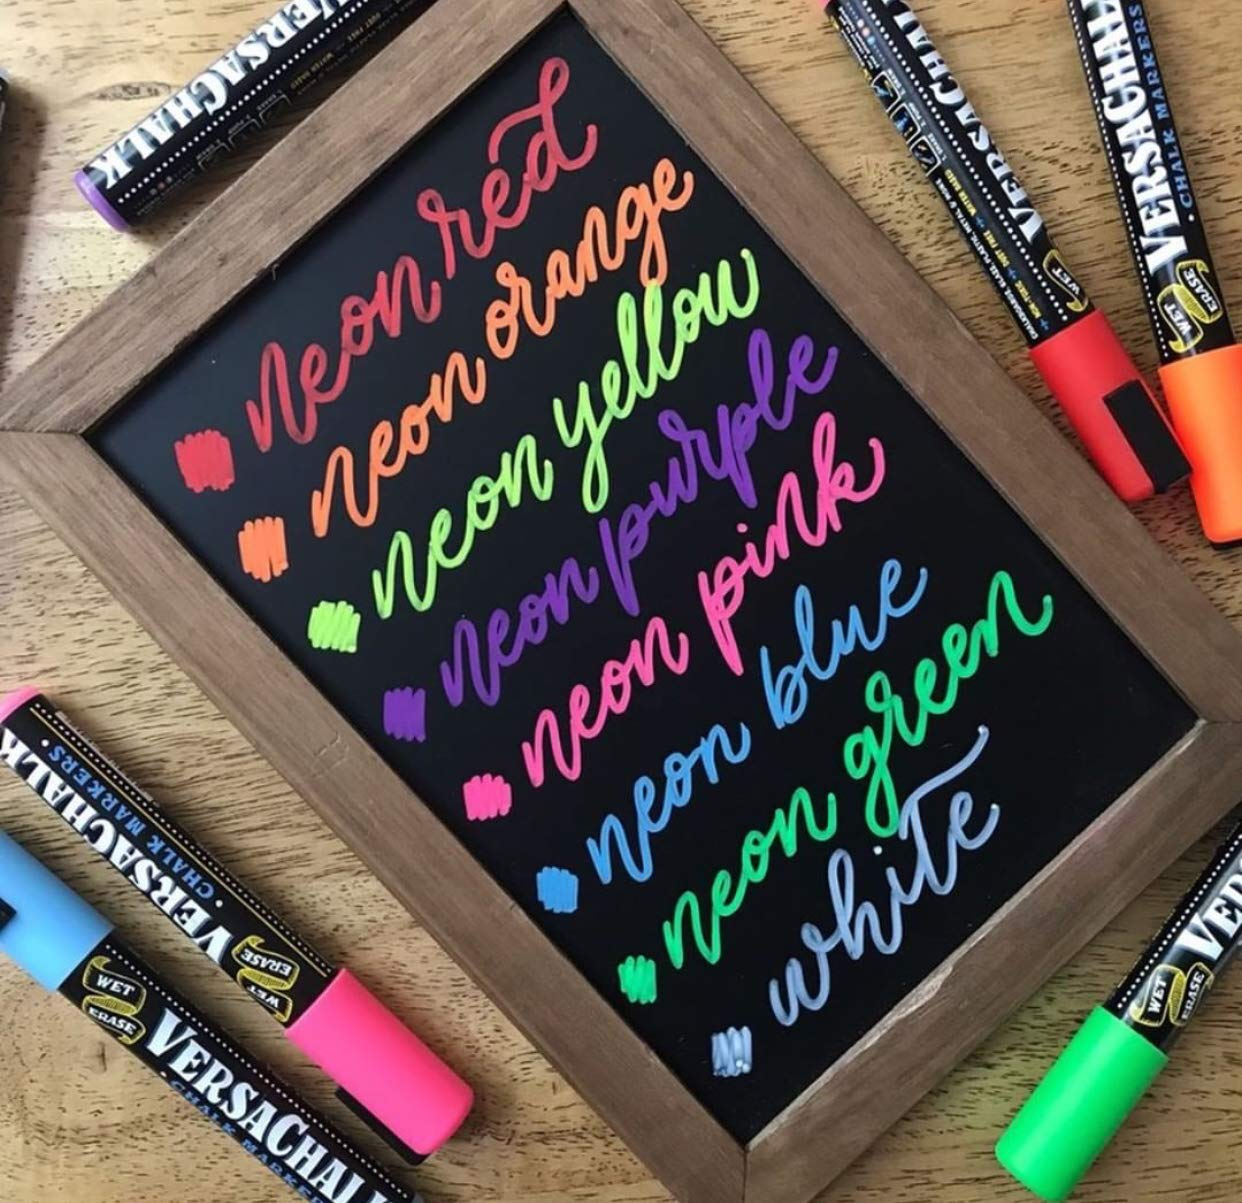 Versachalk Chalk Markers 8 Neon Colored Markers 5mm Bold Tip Vc102 B Clearance Online Shopping Canada And Usa Model Kits Paints Airbrushing Tools